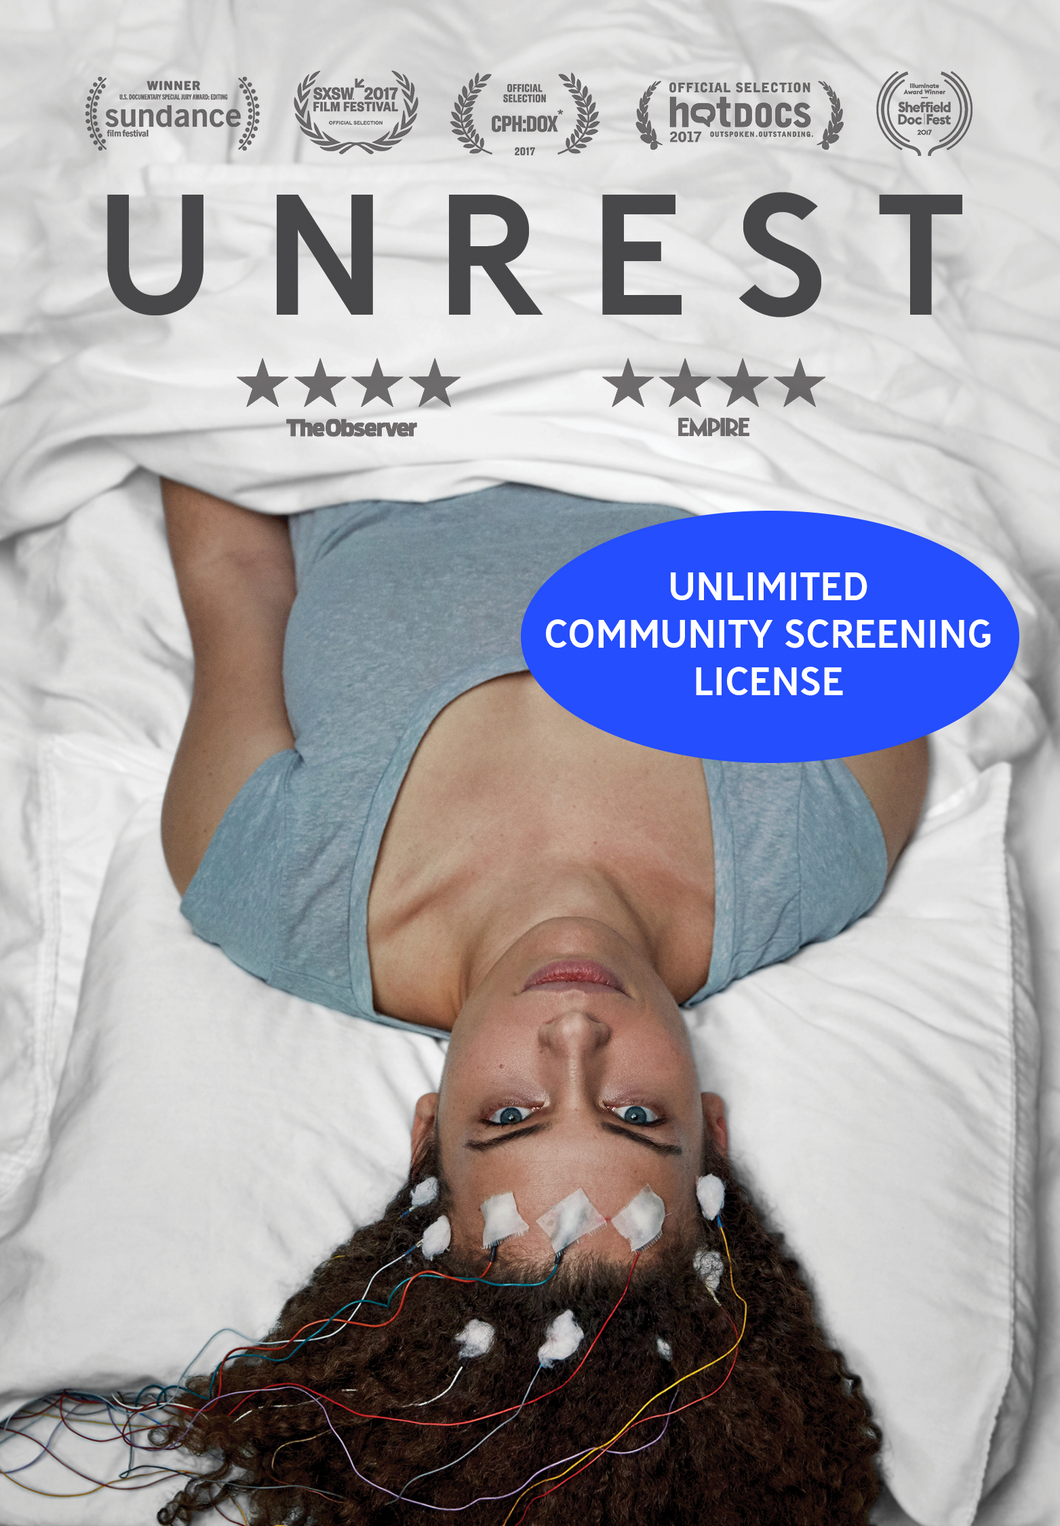 Unrest English Unlimited Community Screening License